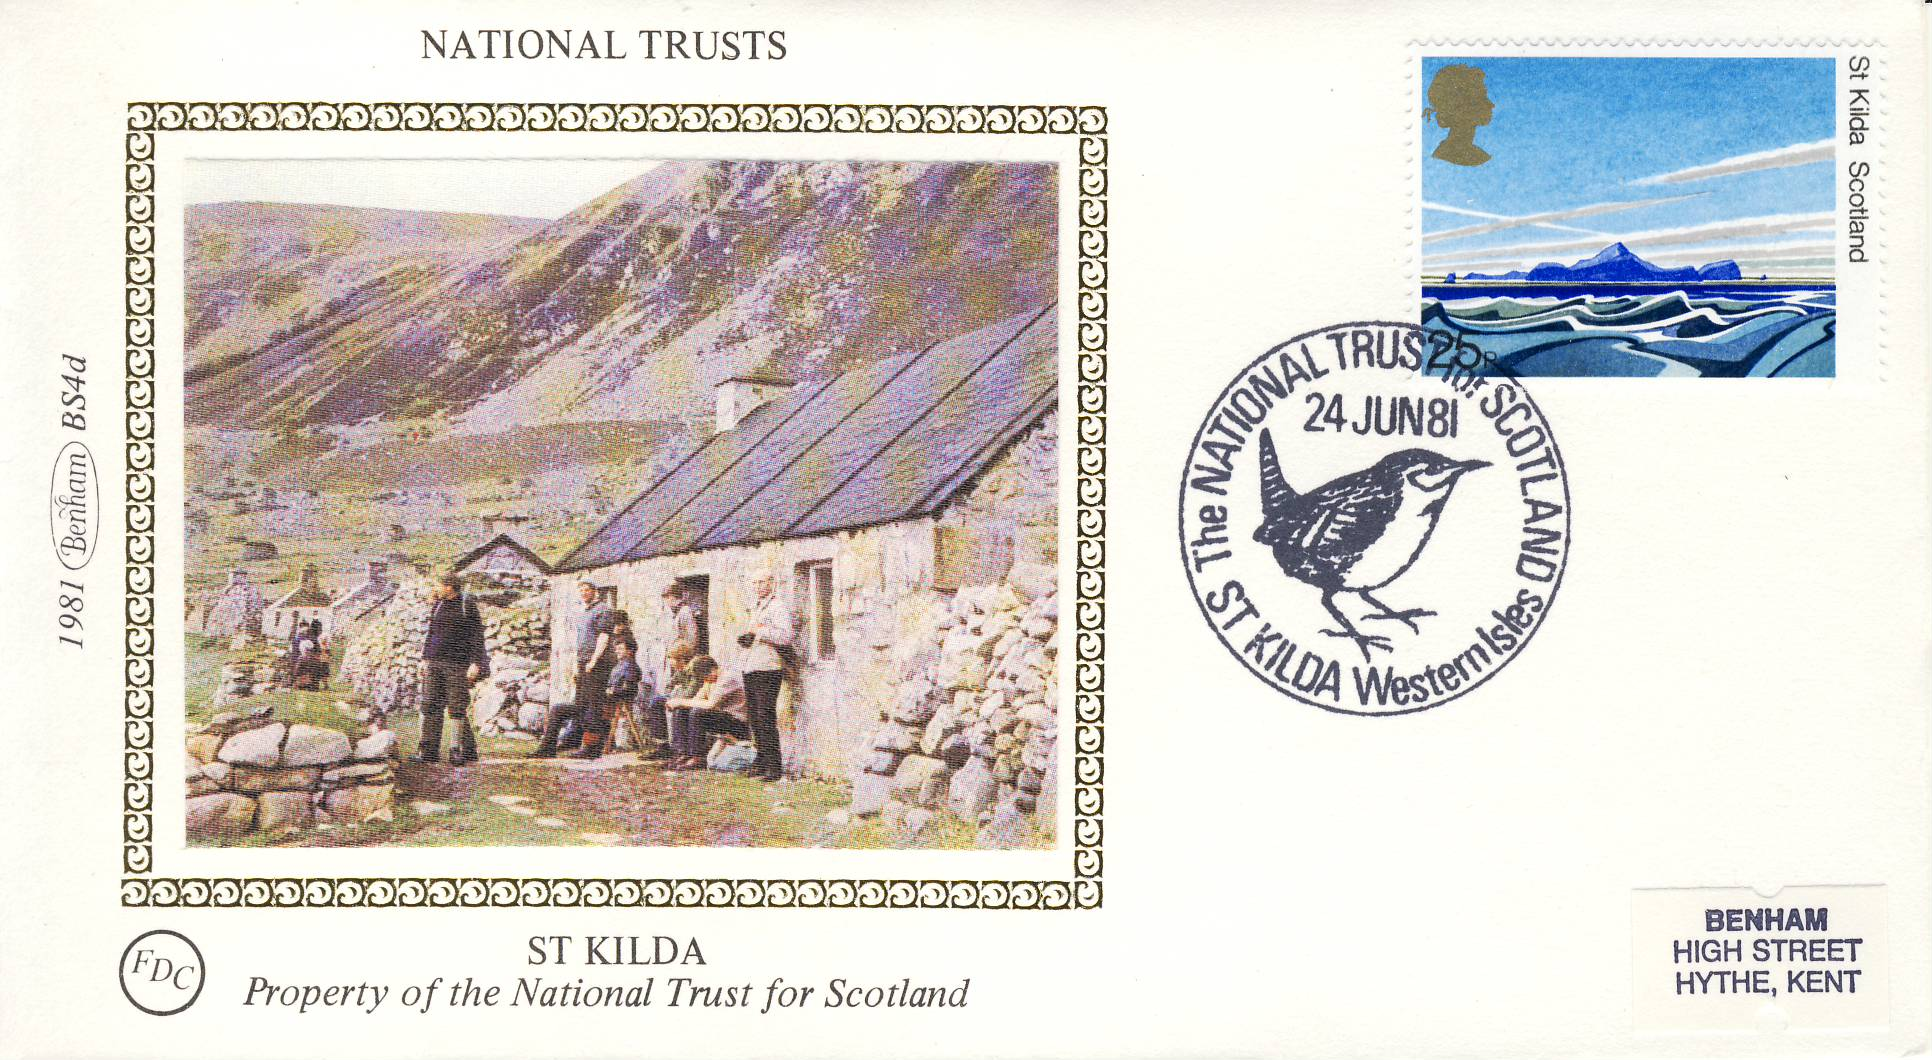 1981 ST KILDA BS4d National Trusts Benham Sm Silk Cover refF489Postmarked St Kilda Western Isles SCOTLAND . Very good condition. Unsealed with insert card. Ideal for gift